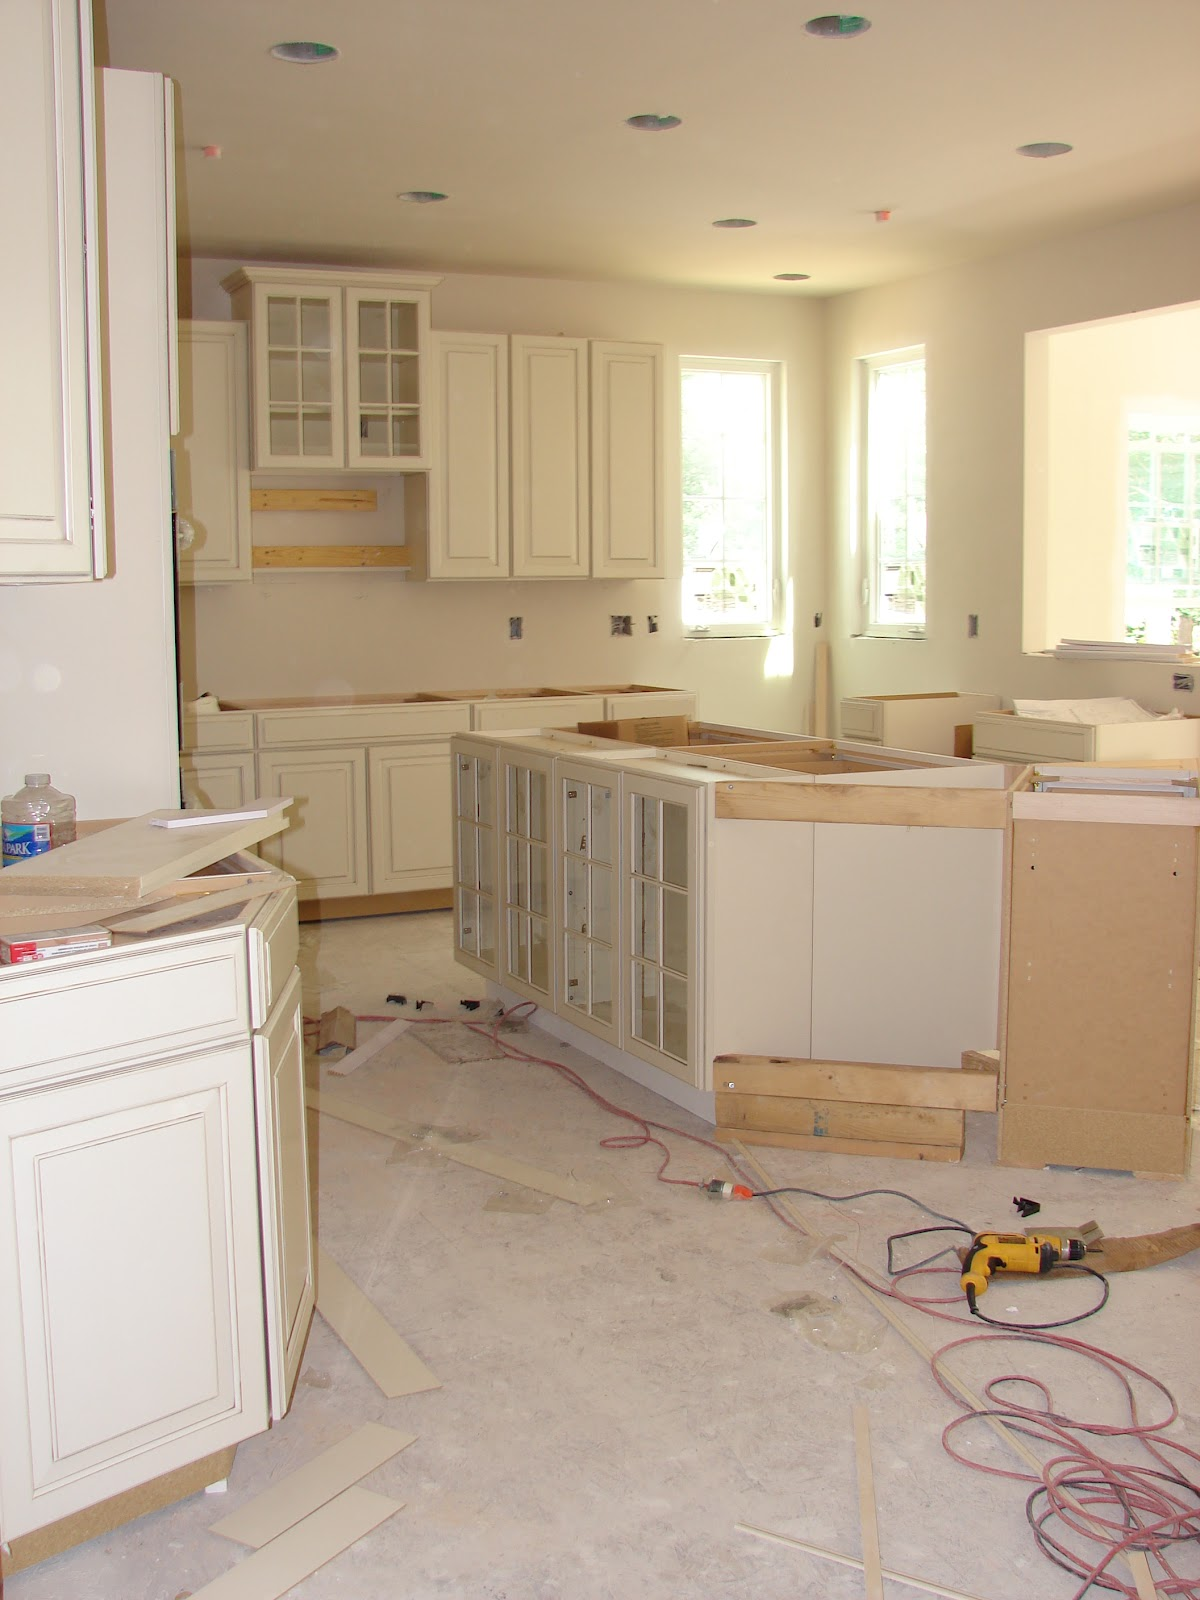 Building a Ryan Home: Avalon: I My Kitchen Cabinets! on